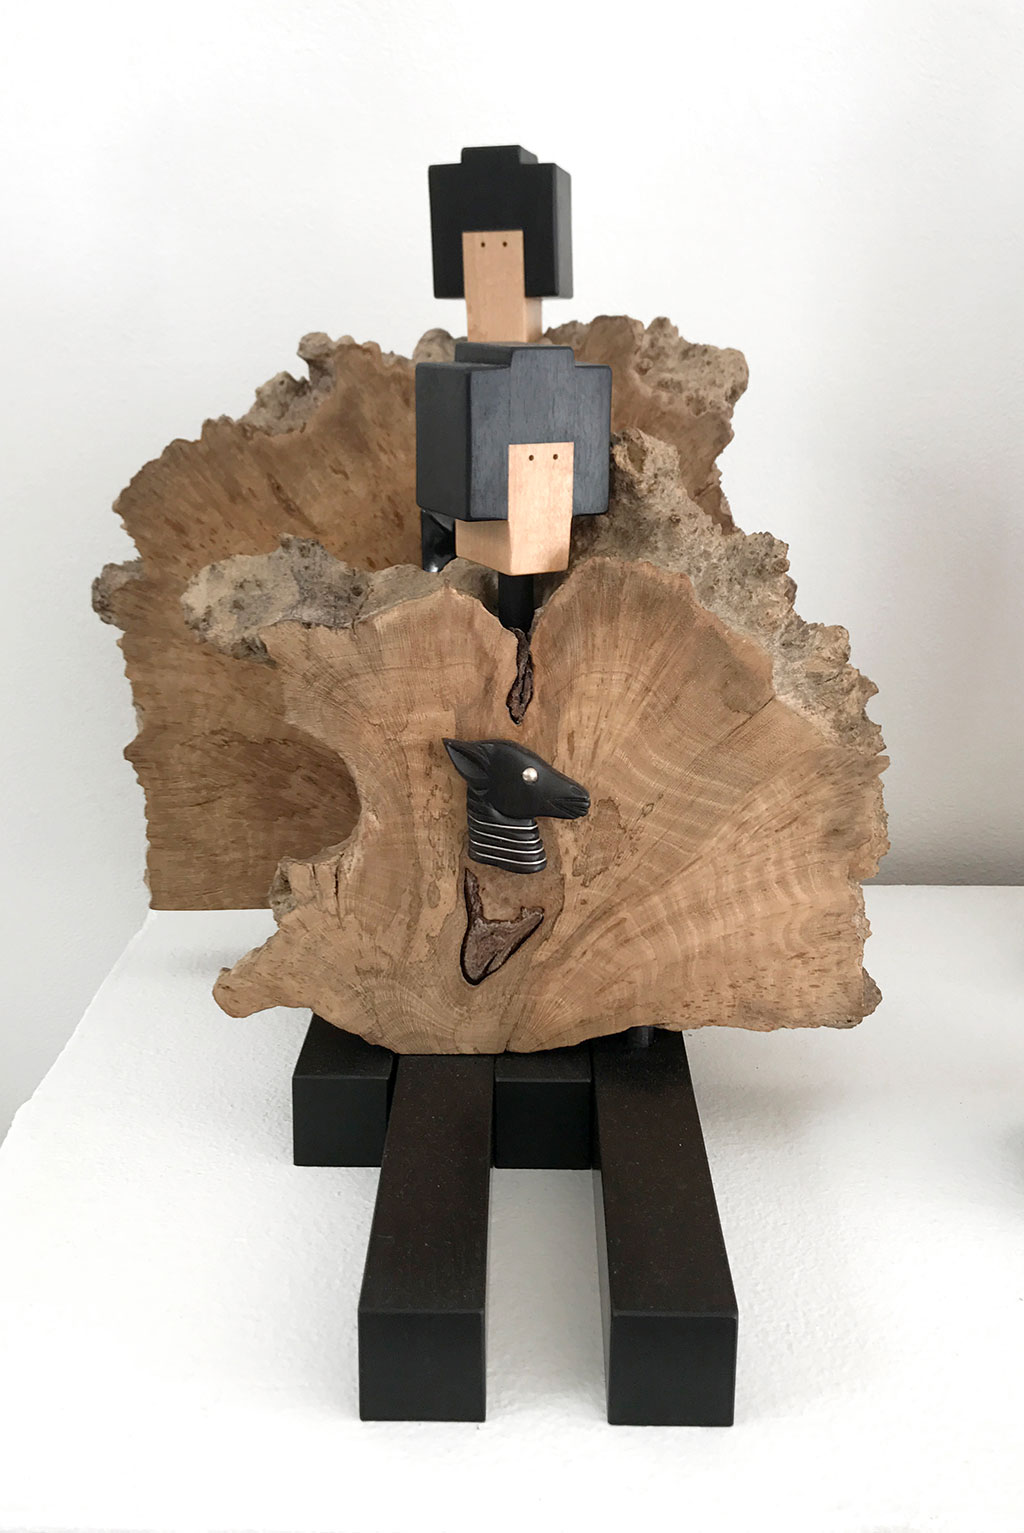 Made to Play, Pamela Weir-Quiton, Burly Girl #1 (behind) and #3 (front), 2018, Burl, Maple, Antelope Deco pin with Ebony hair and legs, Craft in America